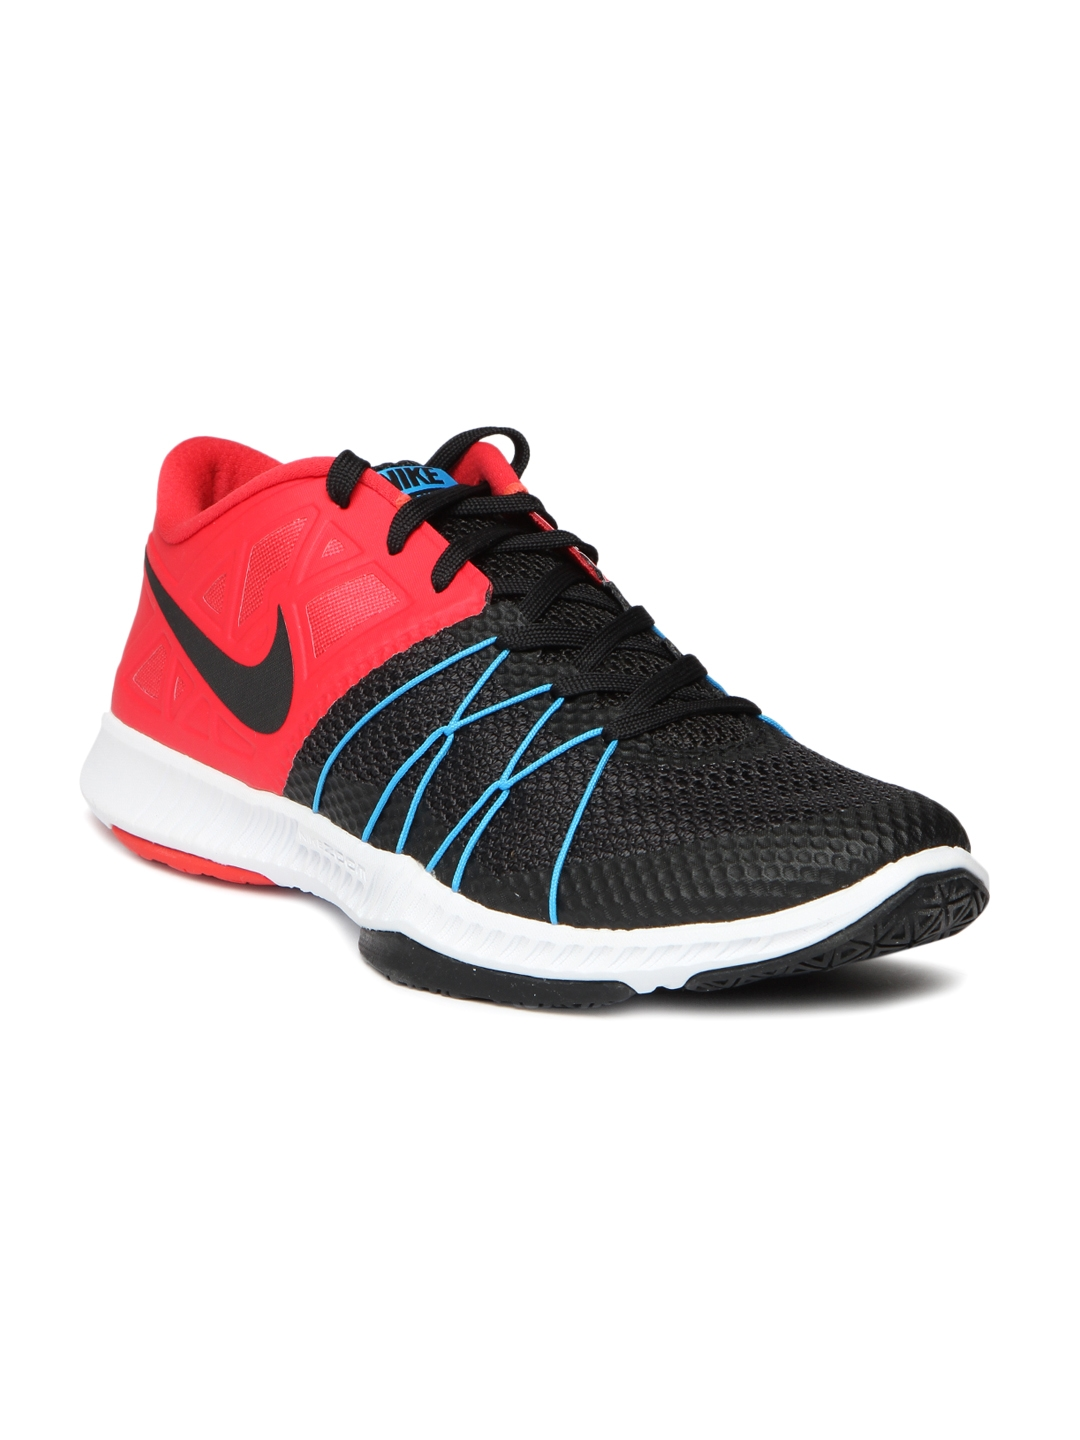 1a12d6ef3548 Buy Nike Men Black   Red Training Zoom Train Incredibly Fast Shoes ...